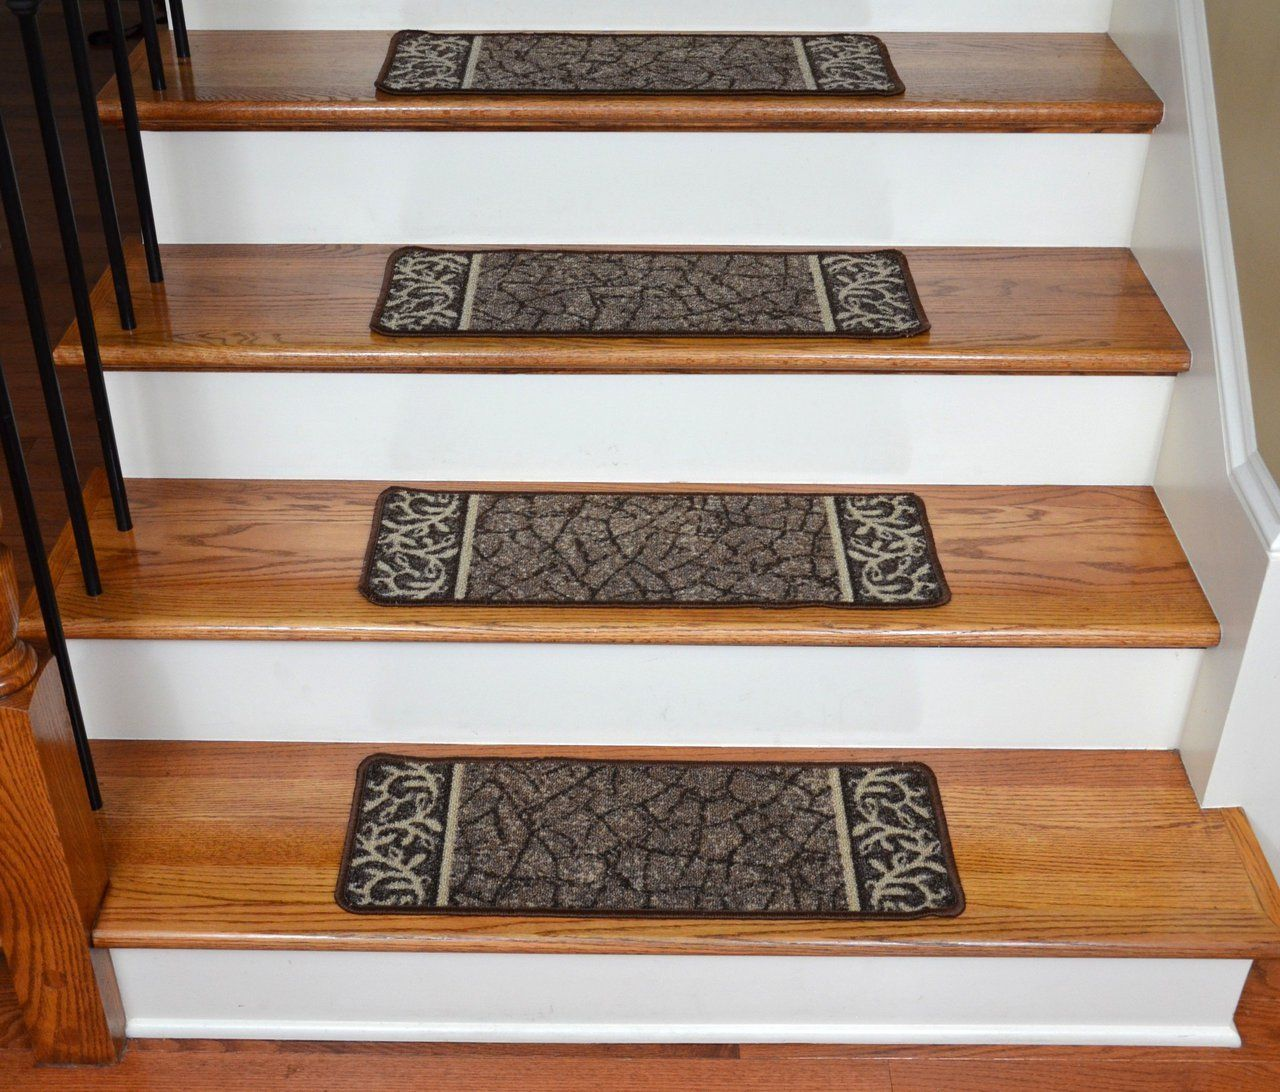 Best Dean Washable Non Skid Carpet Stair Treads Garden Path 400 x 300